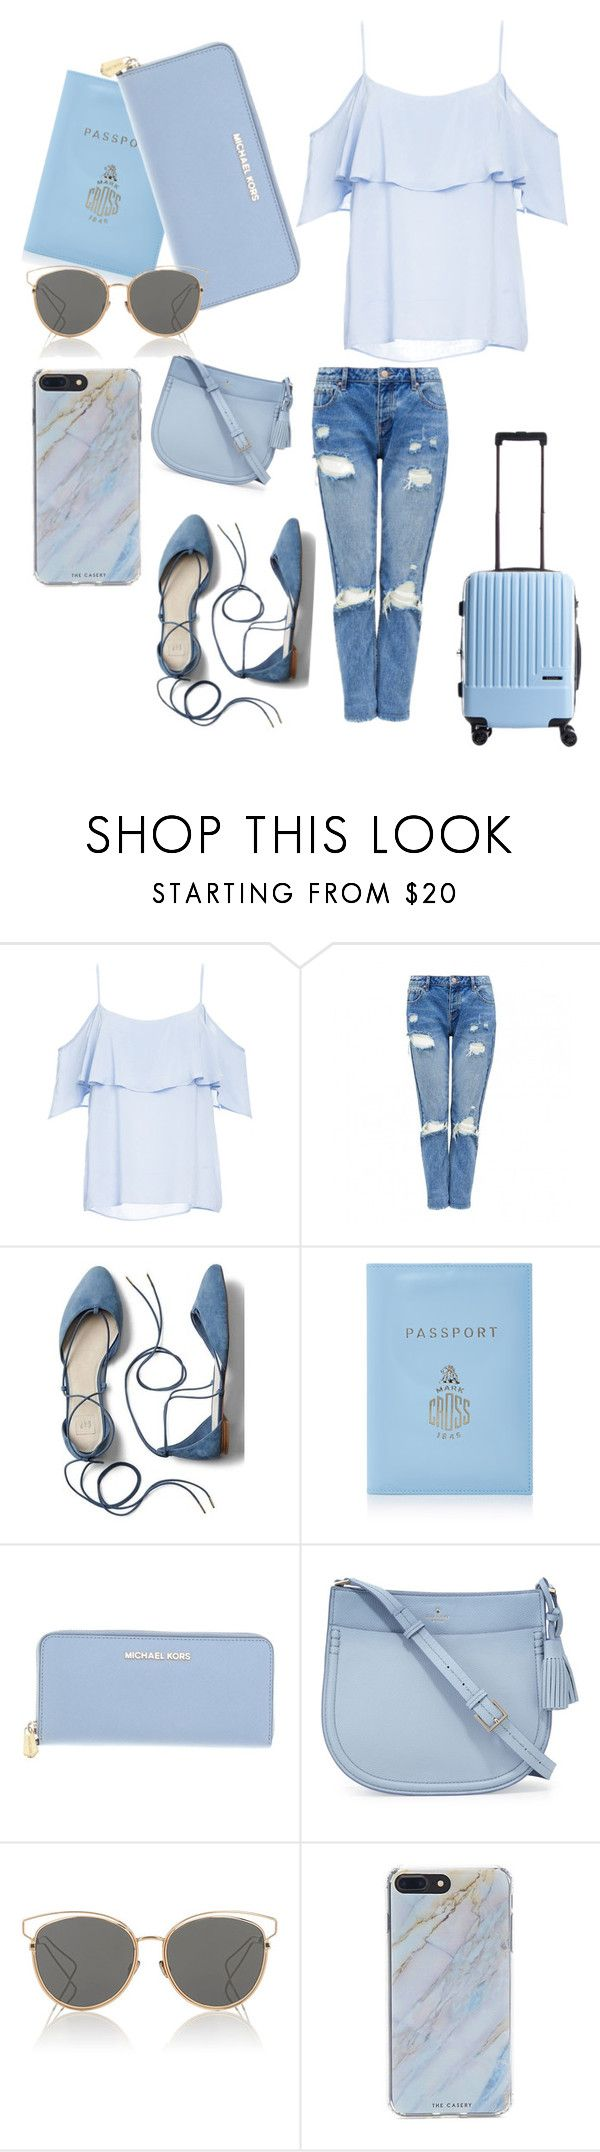 """""""everything is blue💙💙"""" by frzlptrdi ❤ liked on Polyvore featuring BB Dakota, Gap, Mark Cross, Michael Kors, Kate Spade, Christian Dior, Forever 21 and CalPak"""